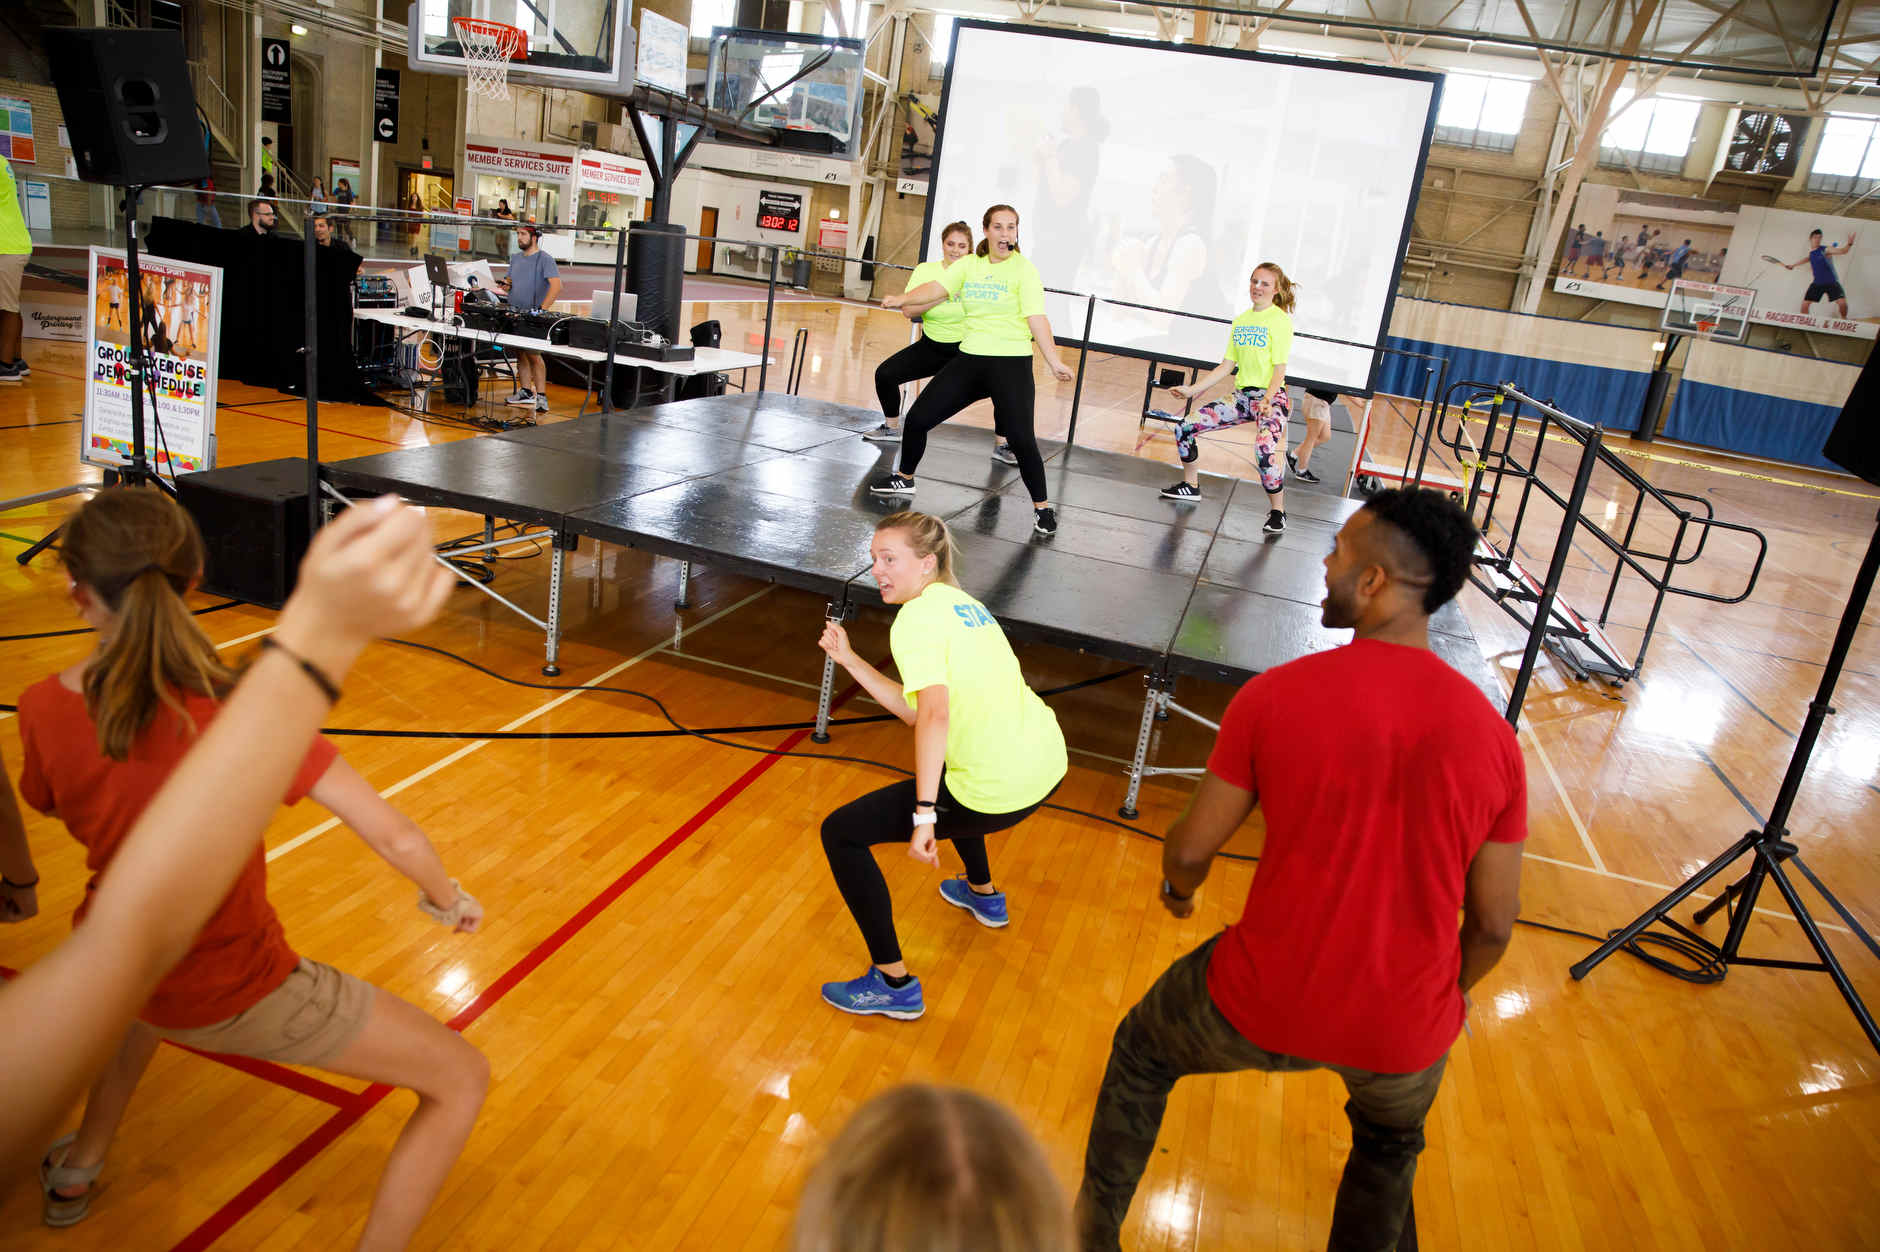 Instructors lead an exercise class from the stage RecFest in the Intramural Center at IU Bloomington on Friday, Aug. 23, 2019. (James Brosher/Indiana University)